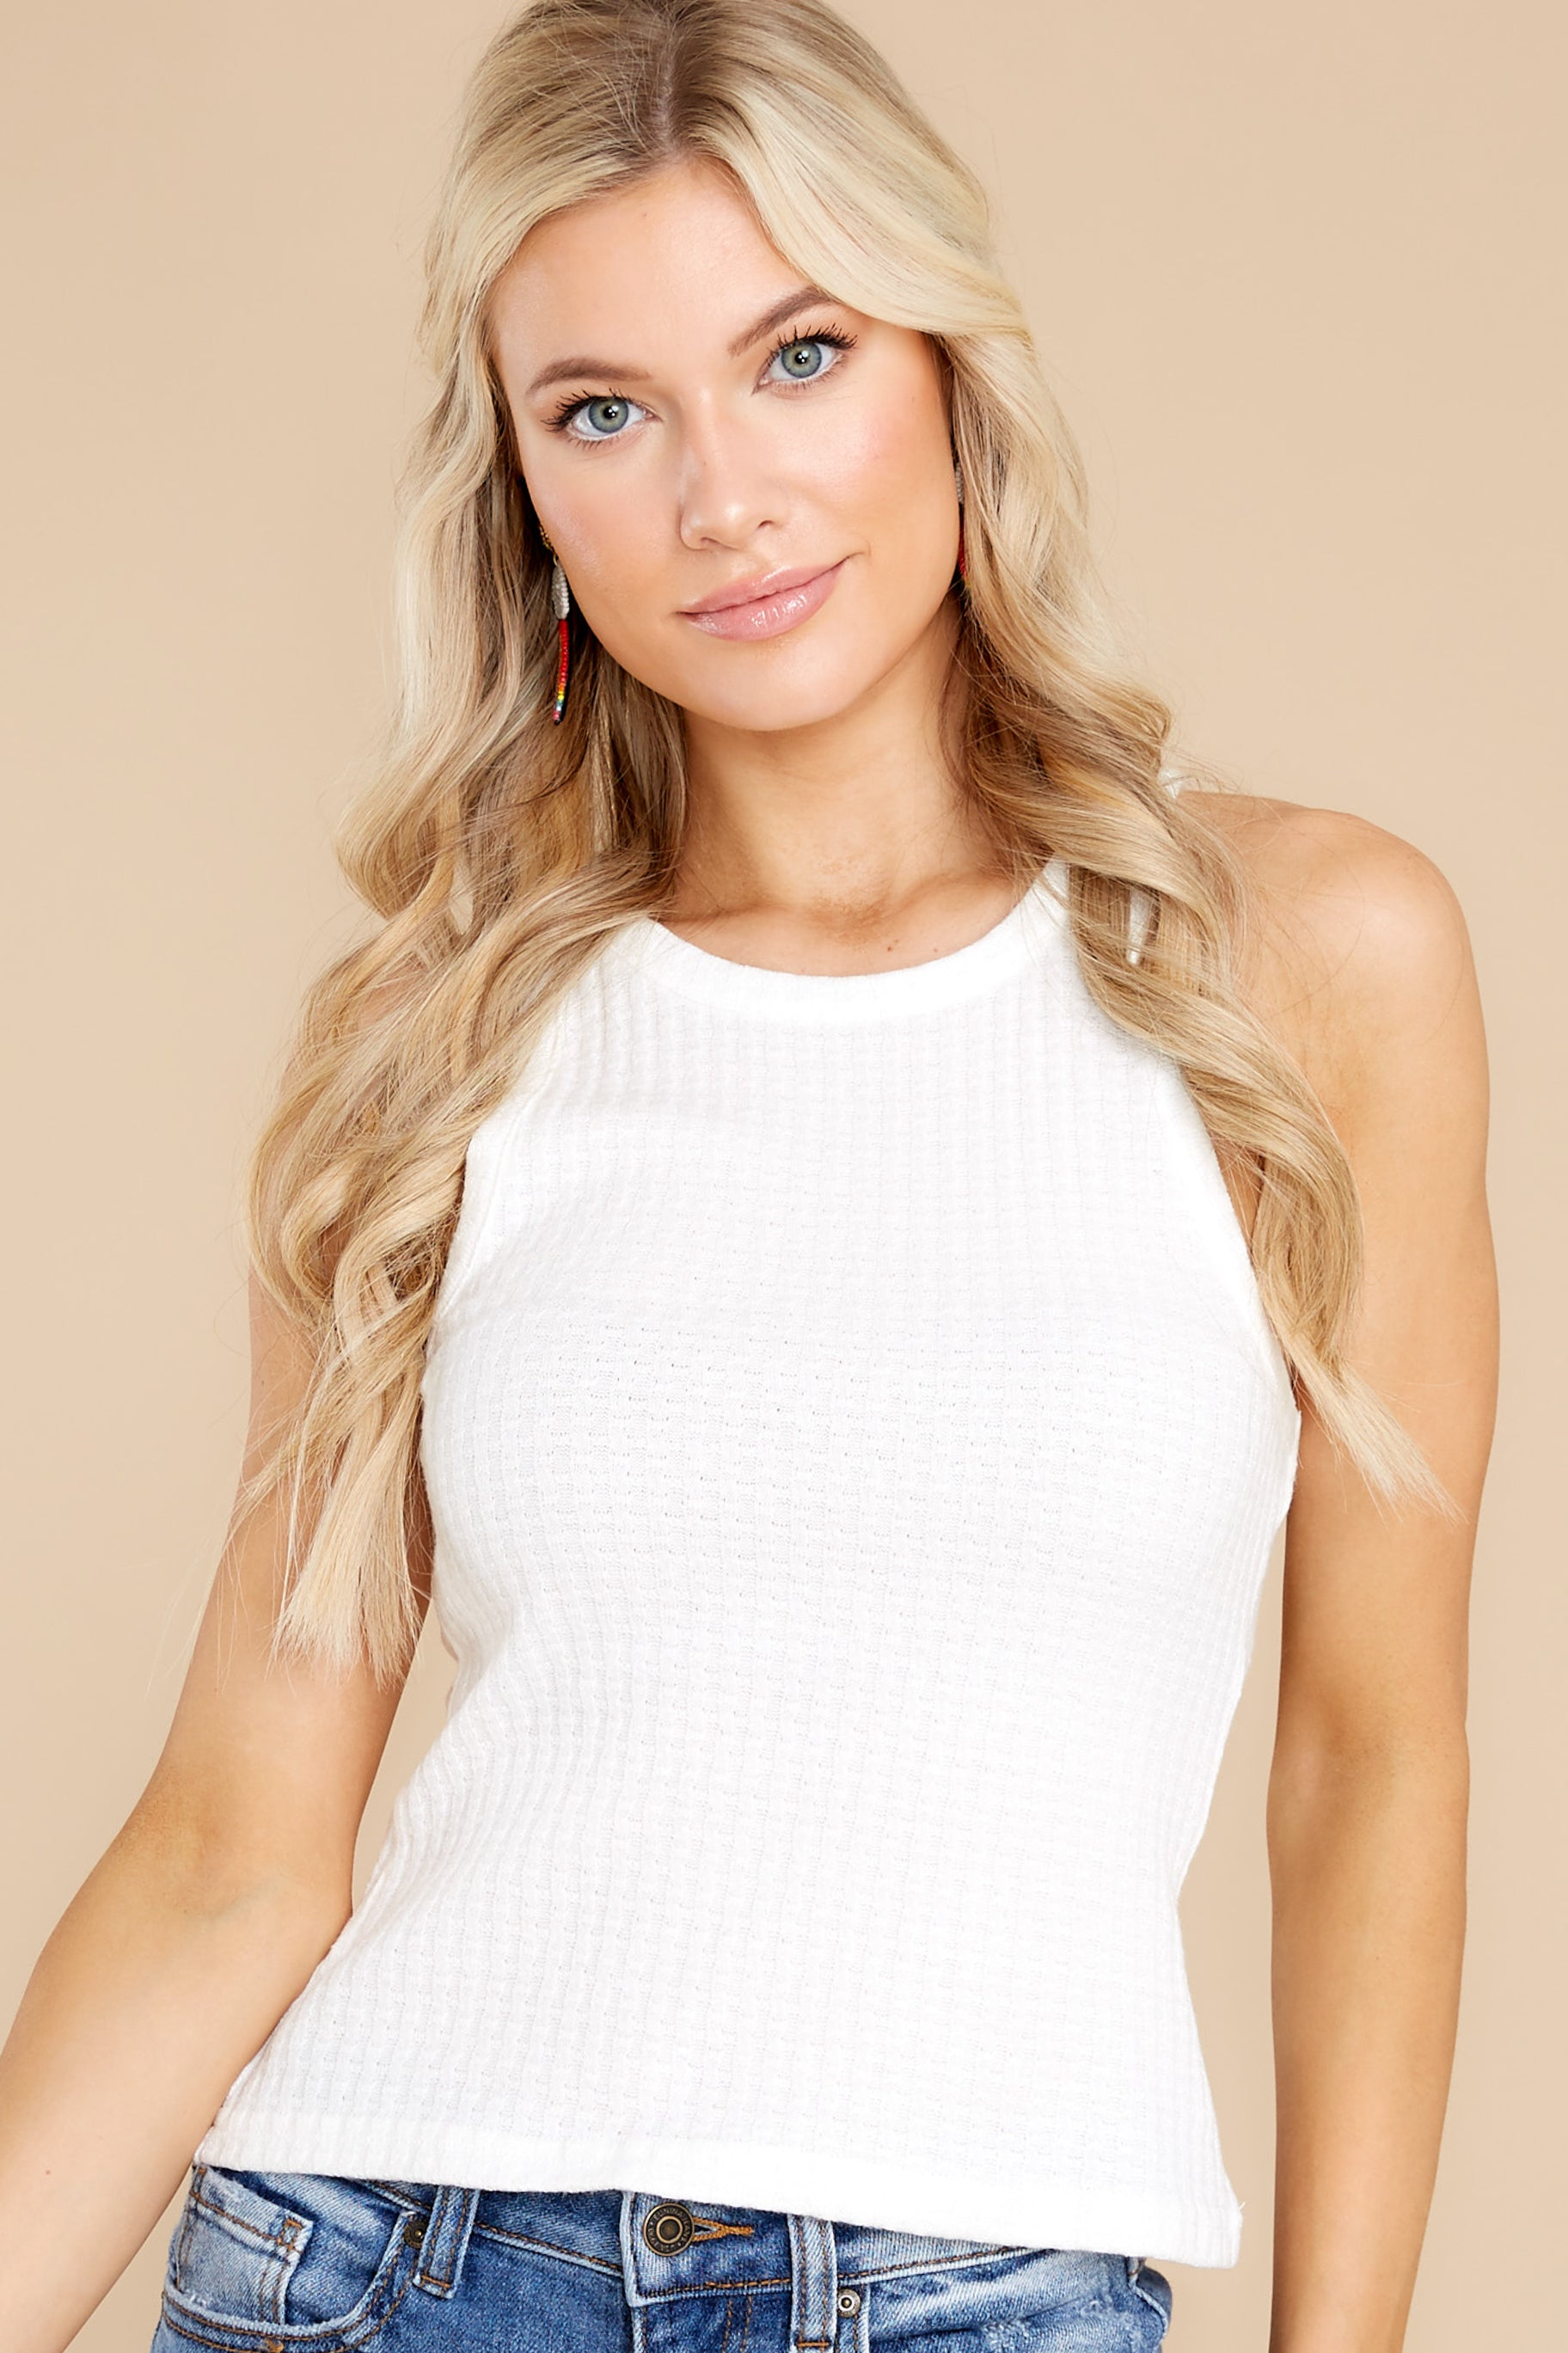 8 Here With You White Tank Top at reddress.com